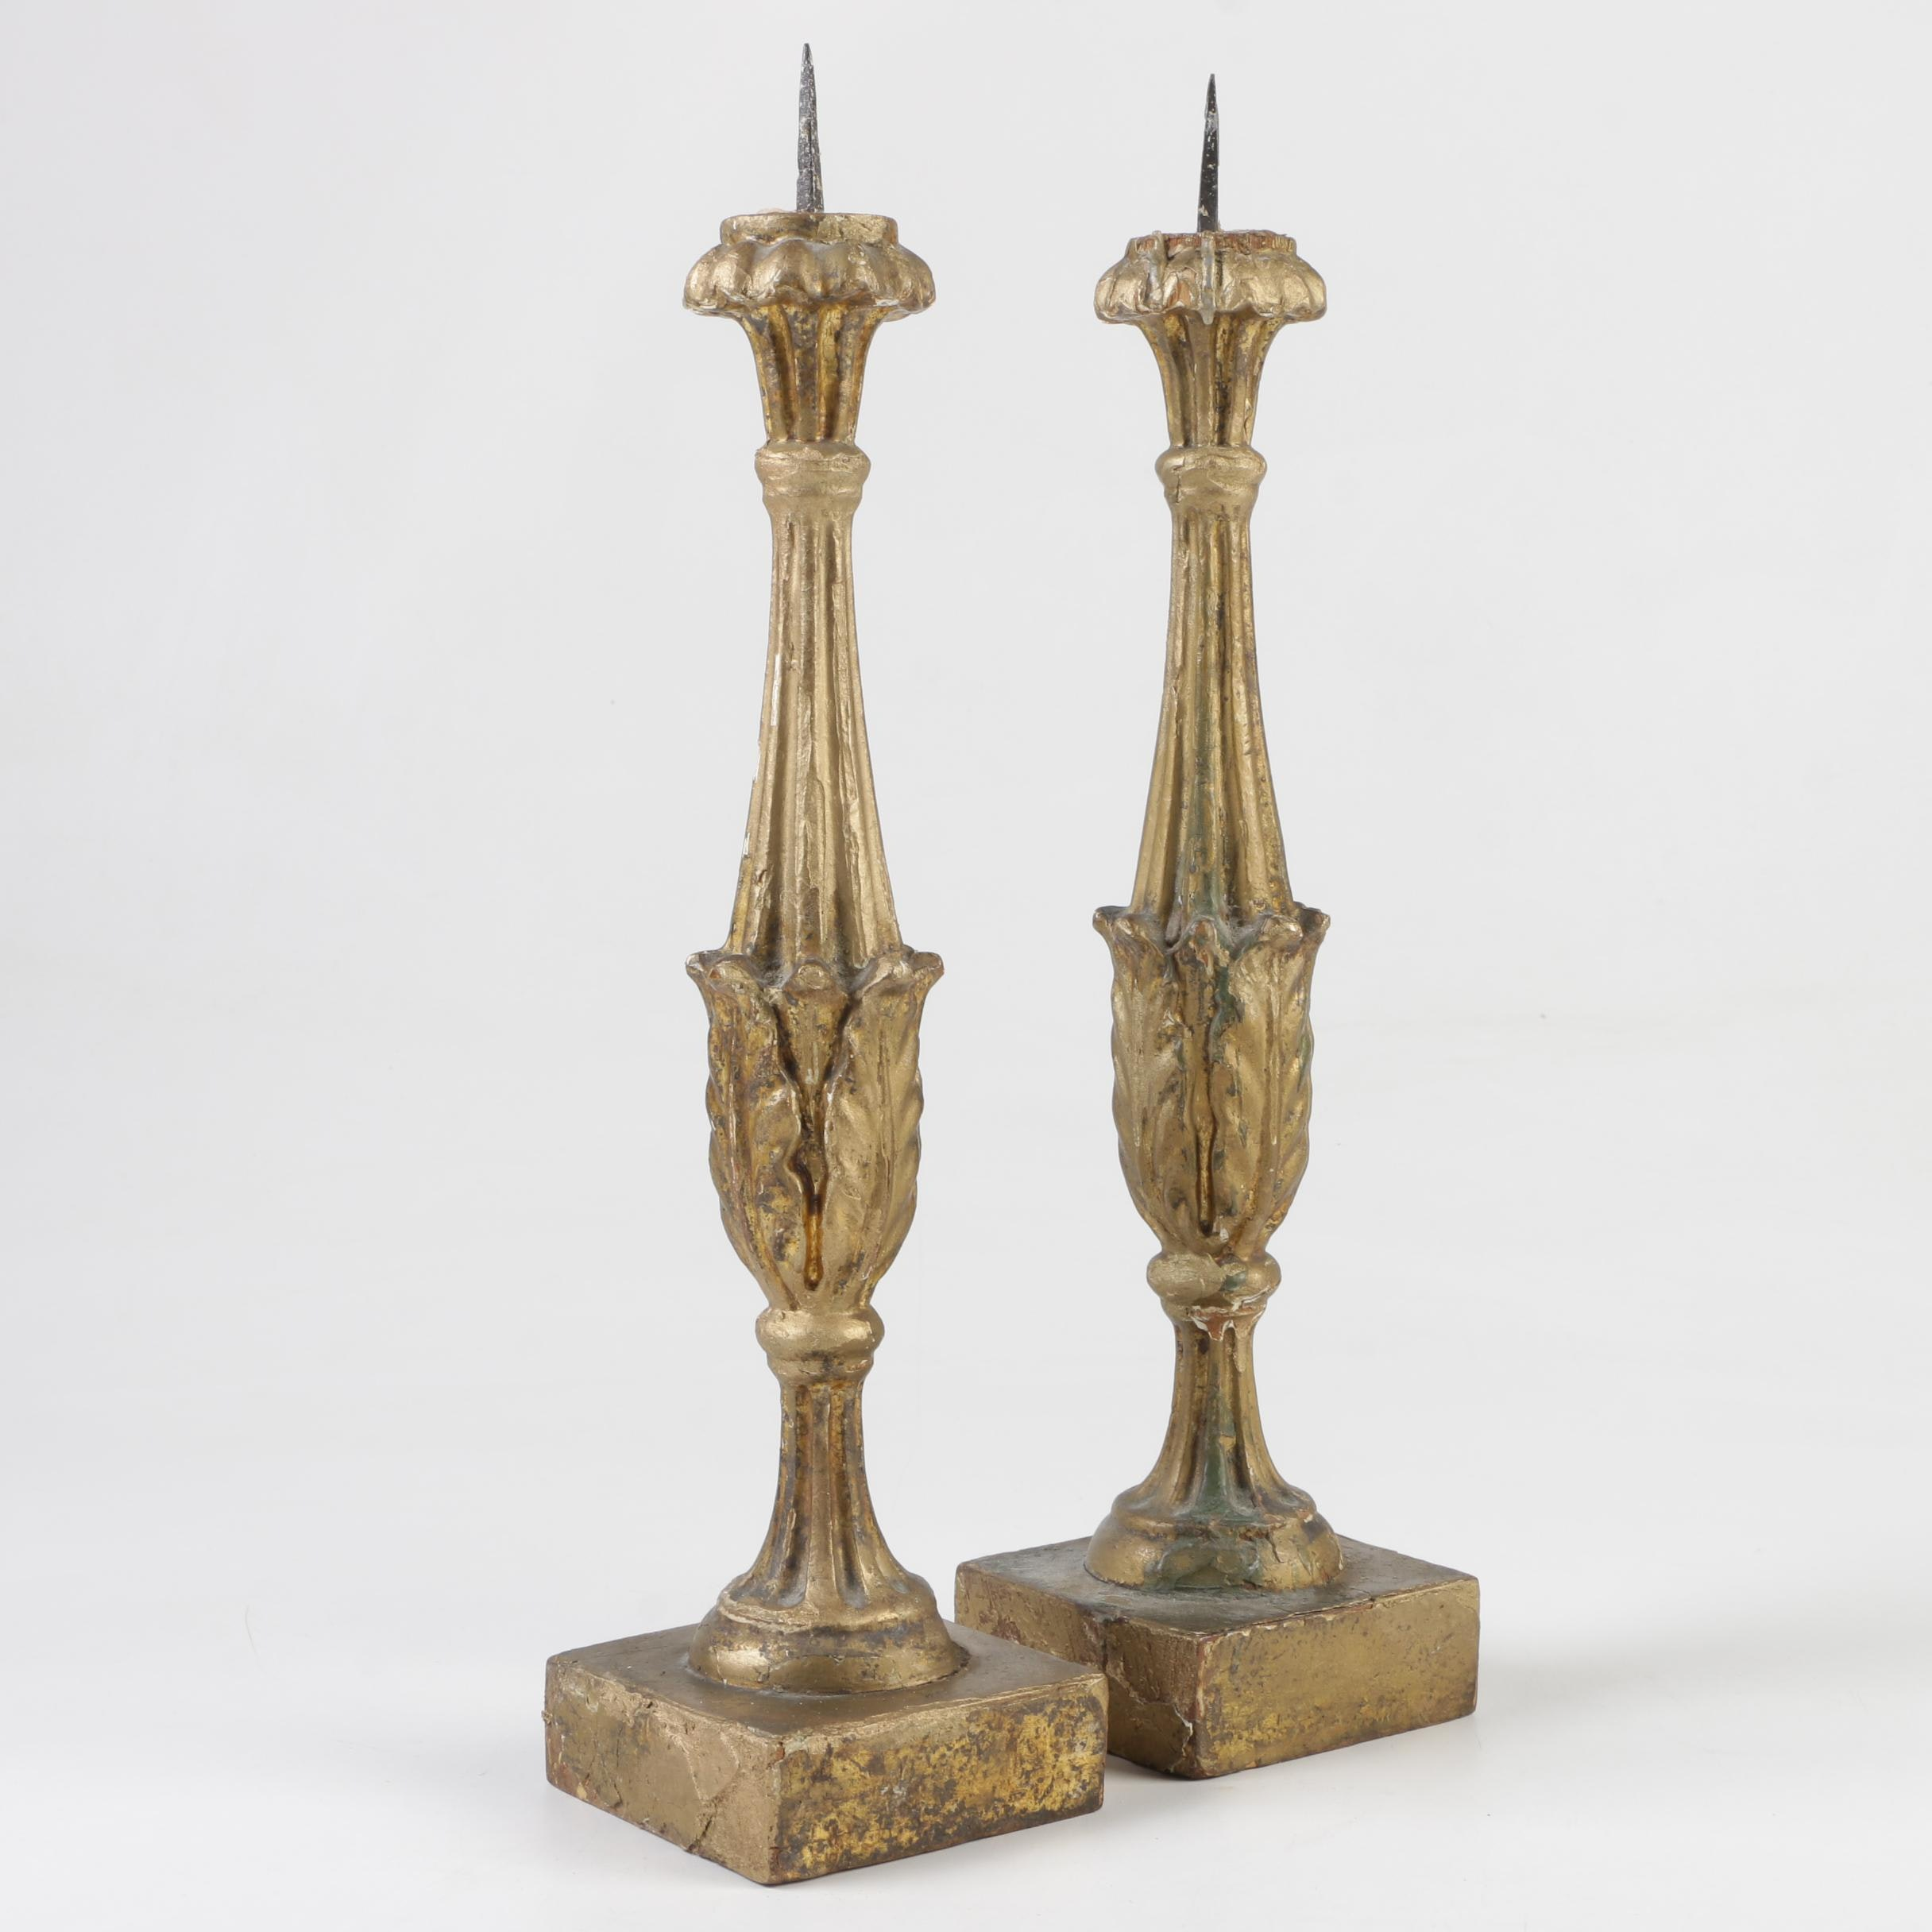 Italian Gilt-Painted Wood Pricket Candlesticks, Late 18th to Early 19th Century